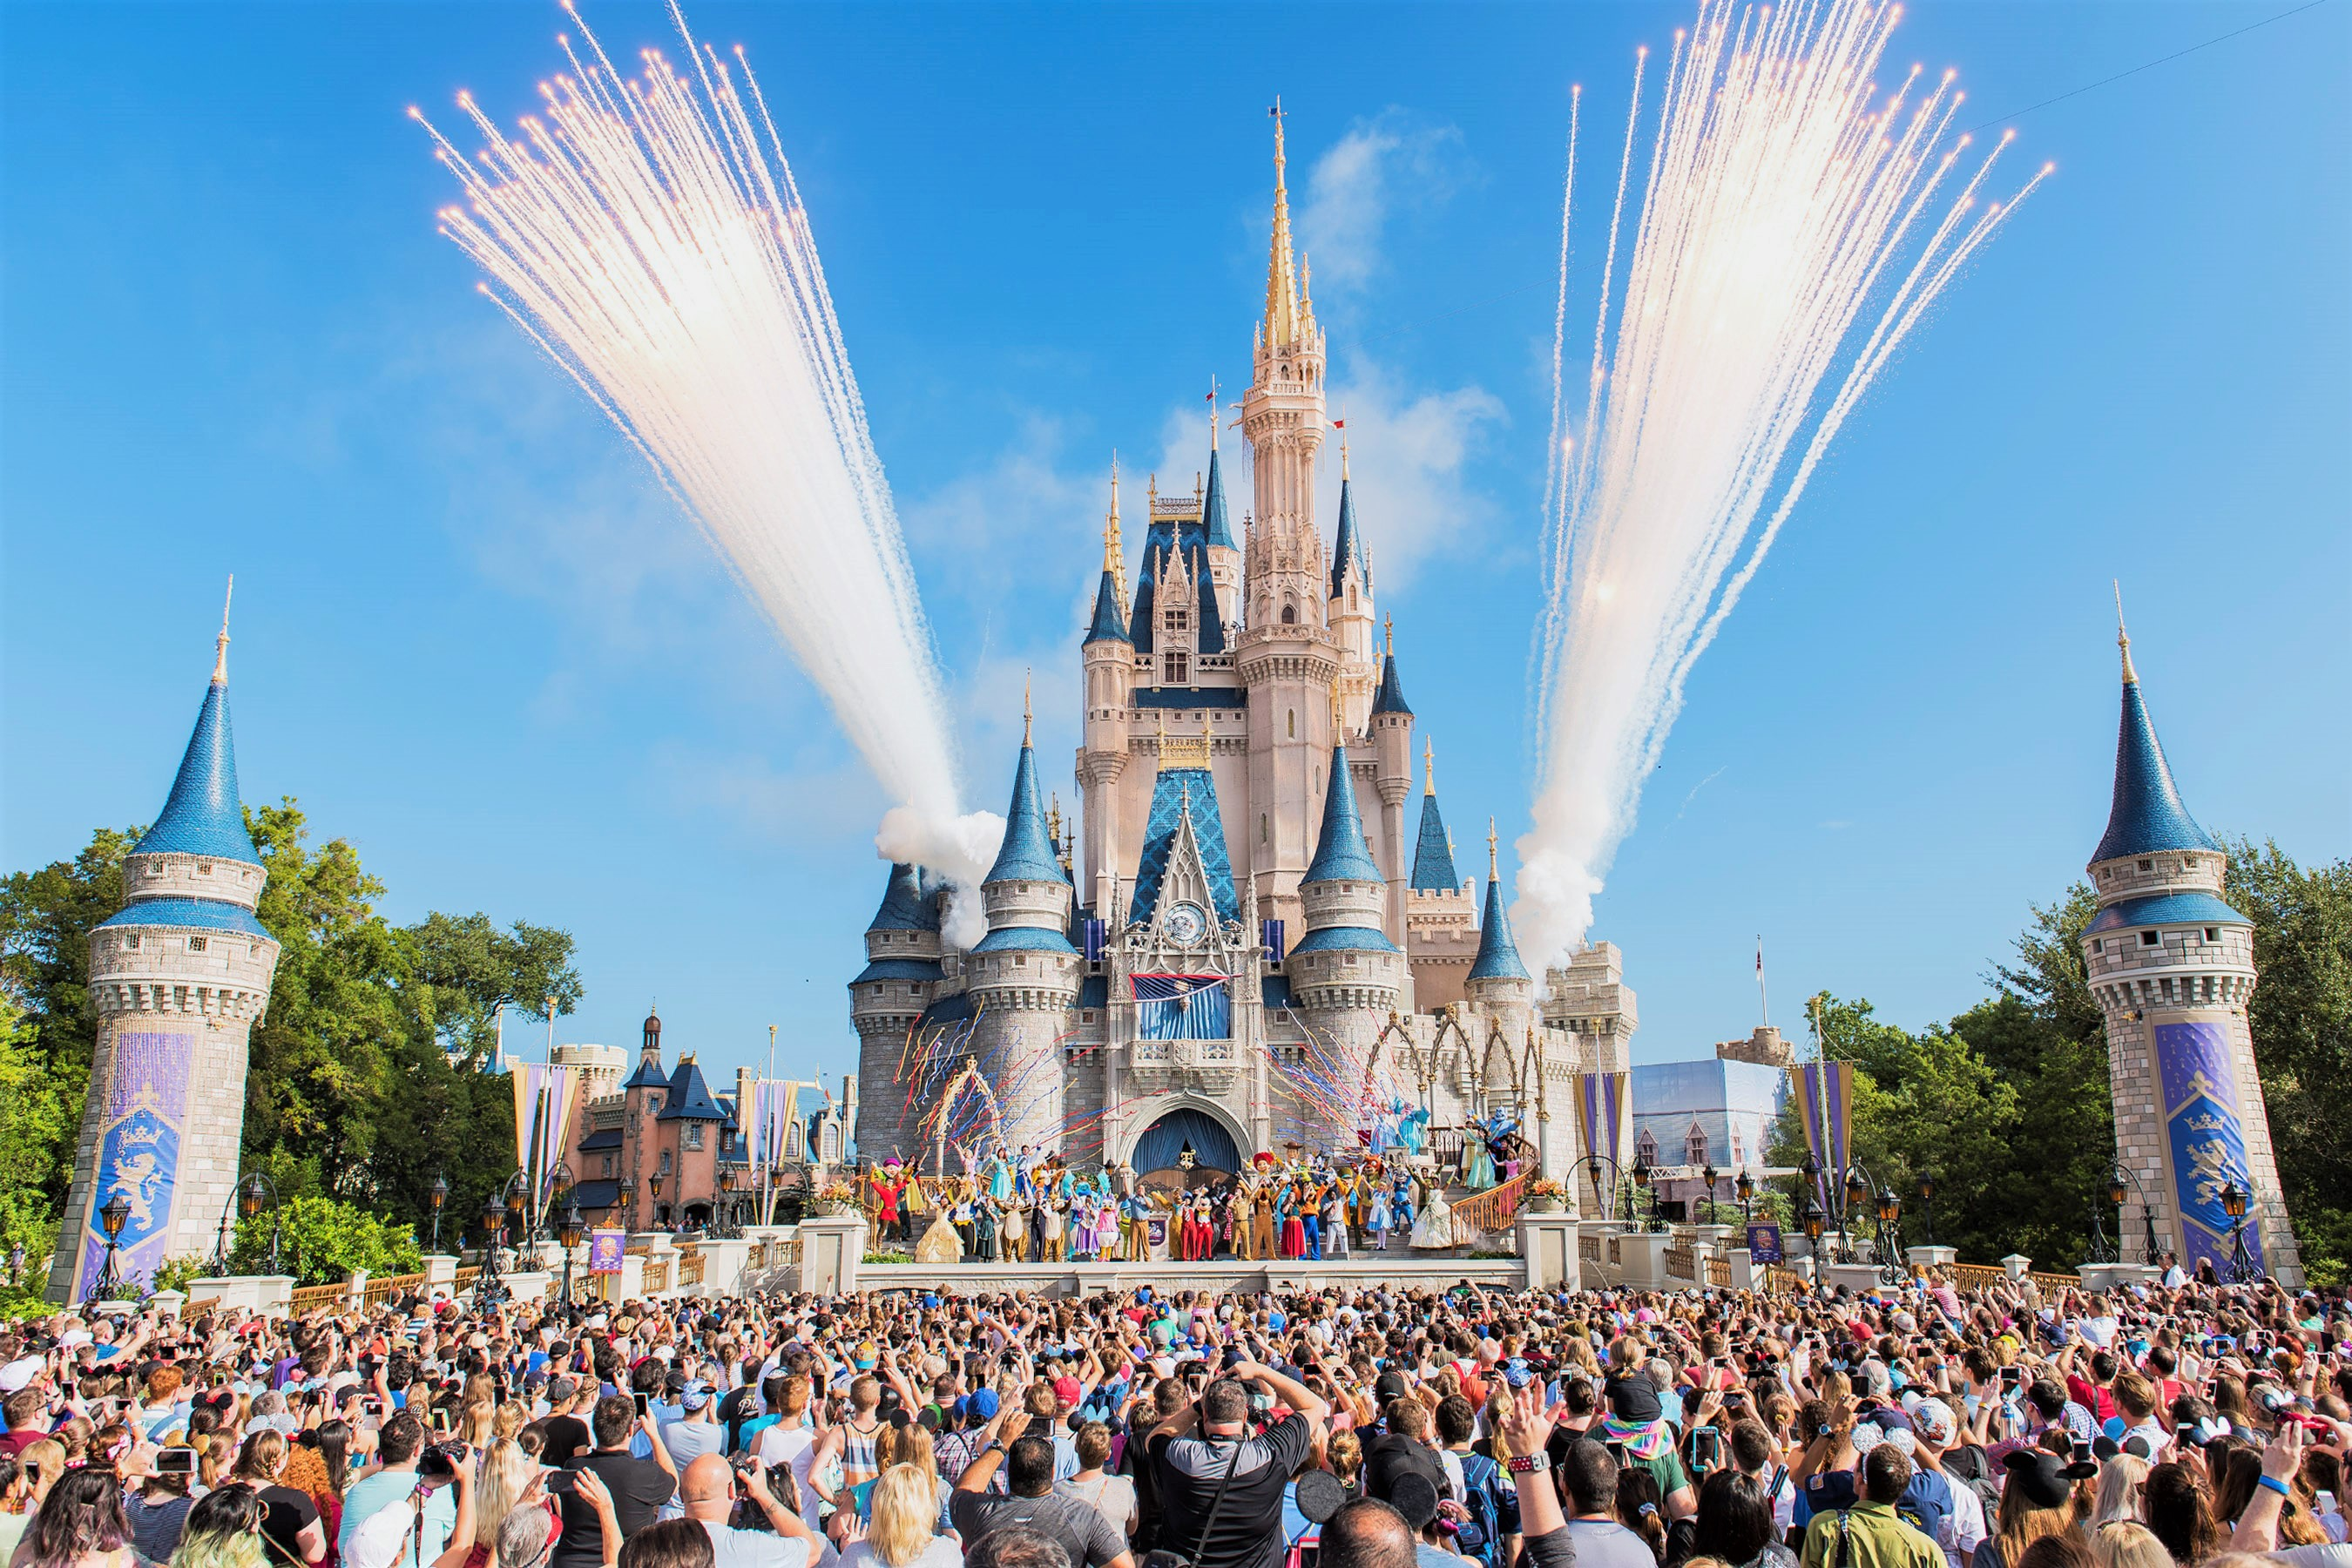 Disneyland Castle with Fireworks and Large Crowd During the Day